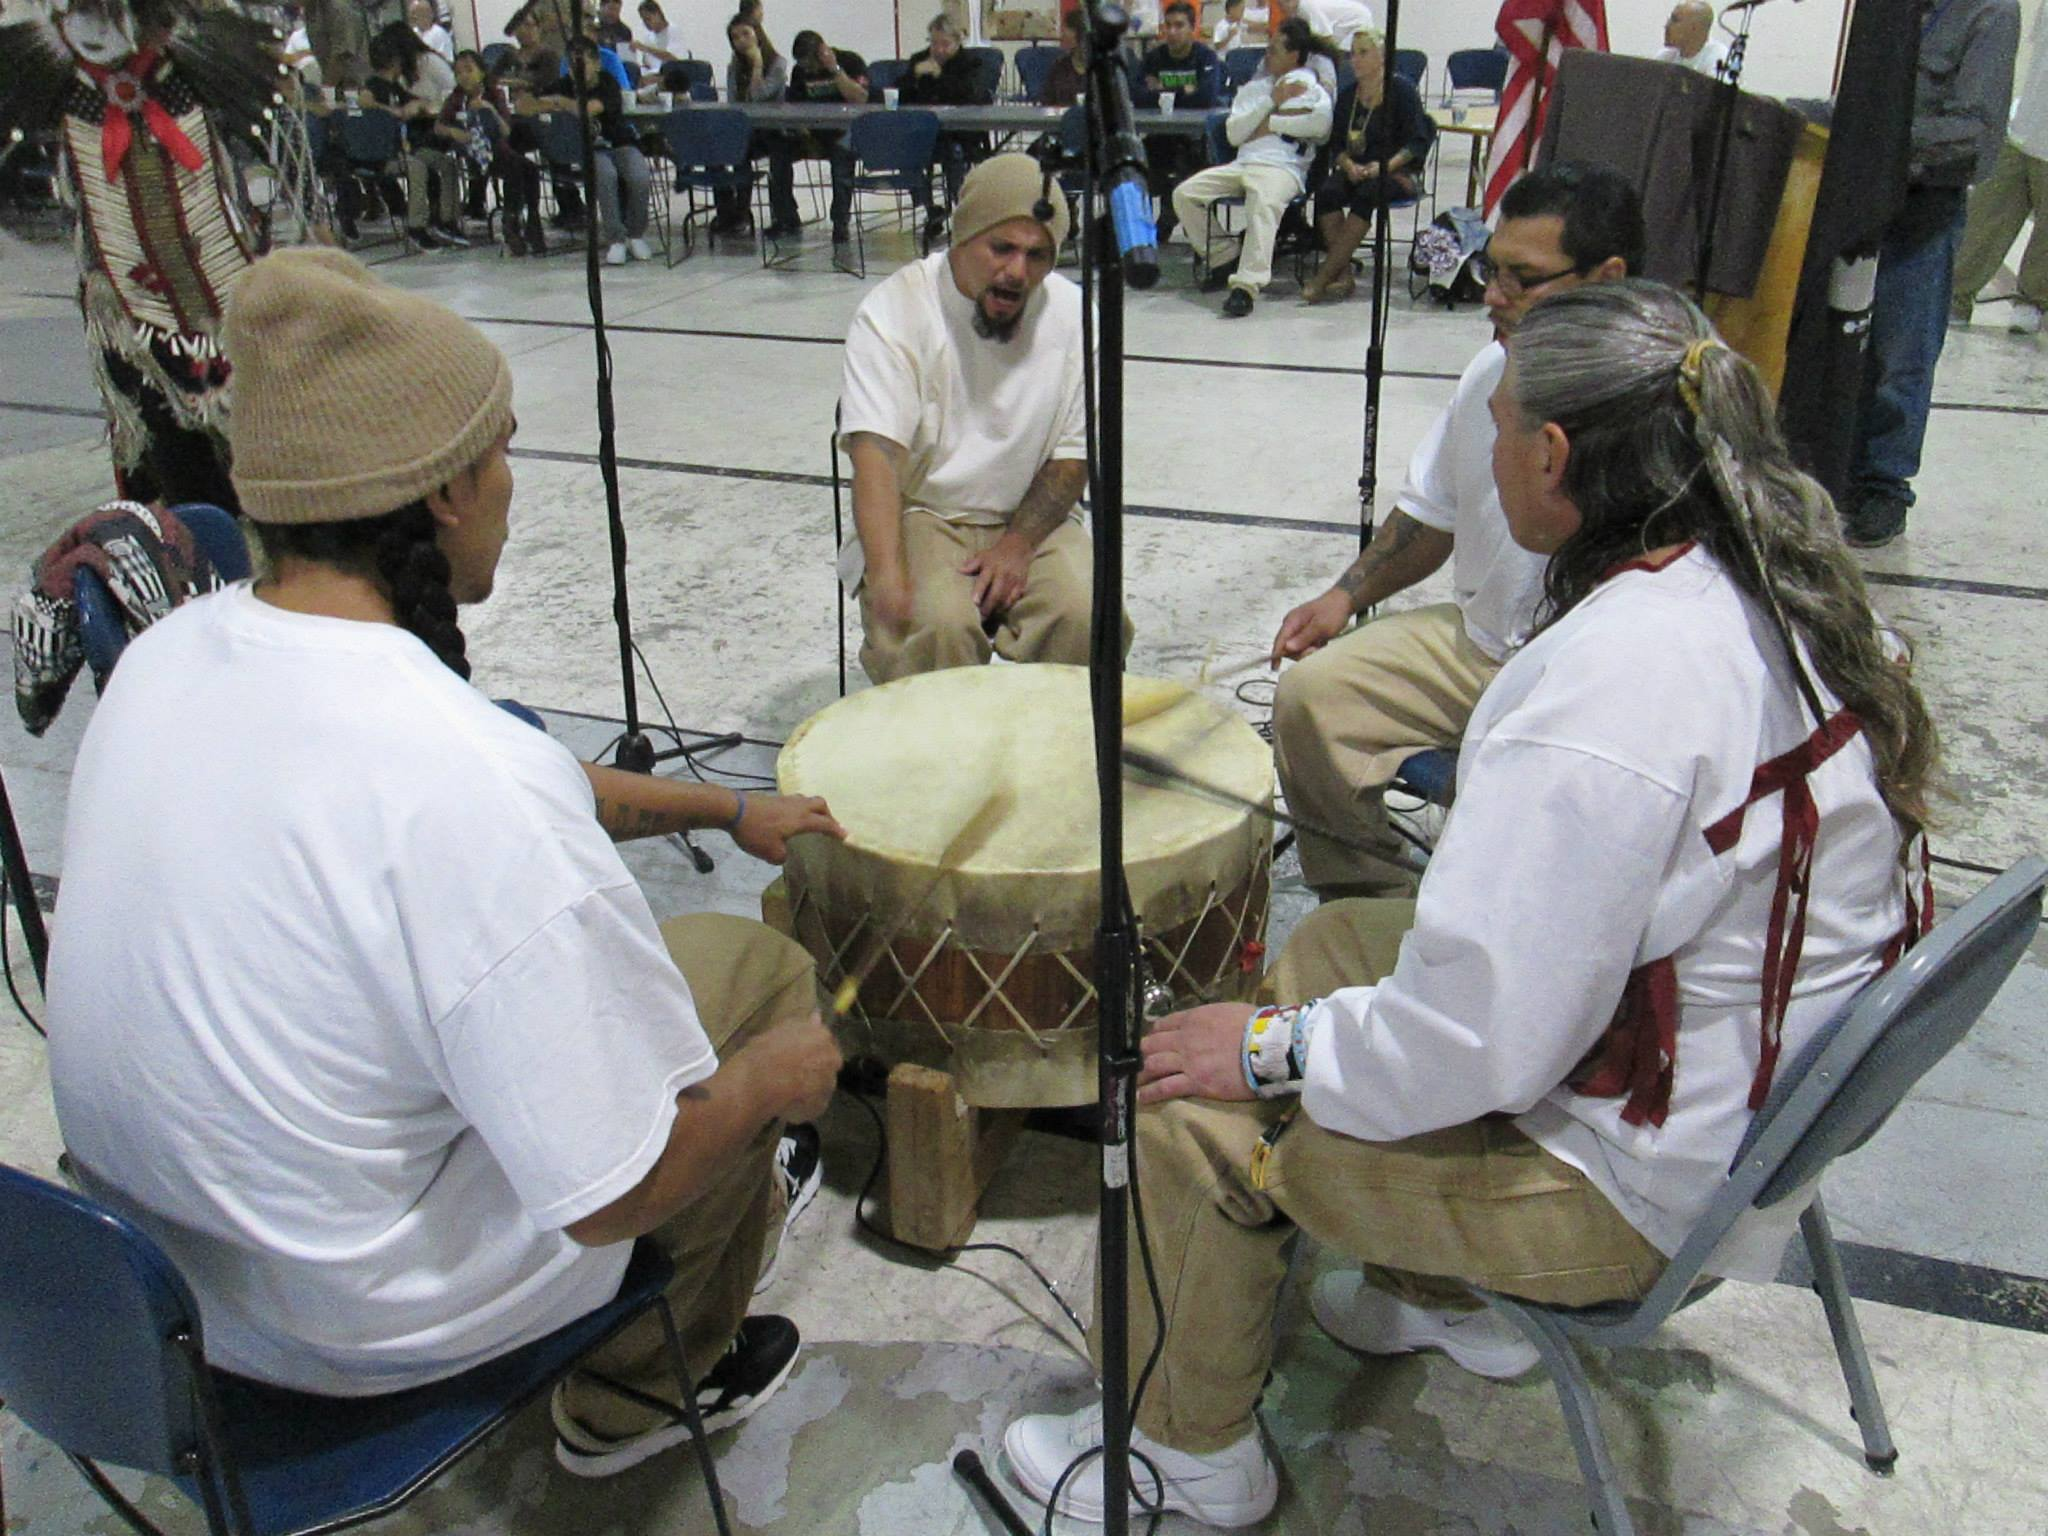 Court sides with Indian inmates over closure of sweat lodge